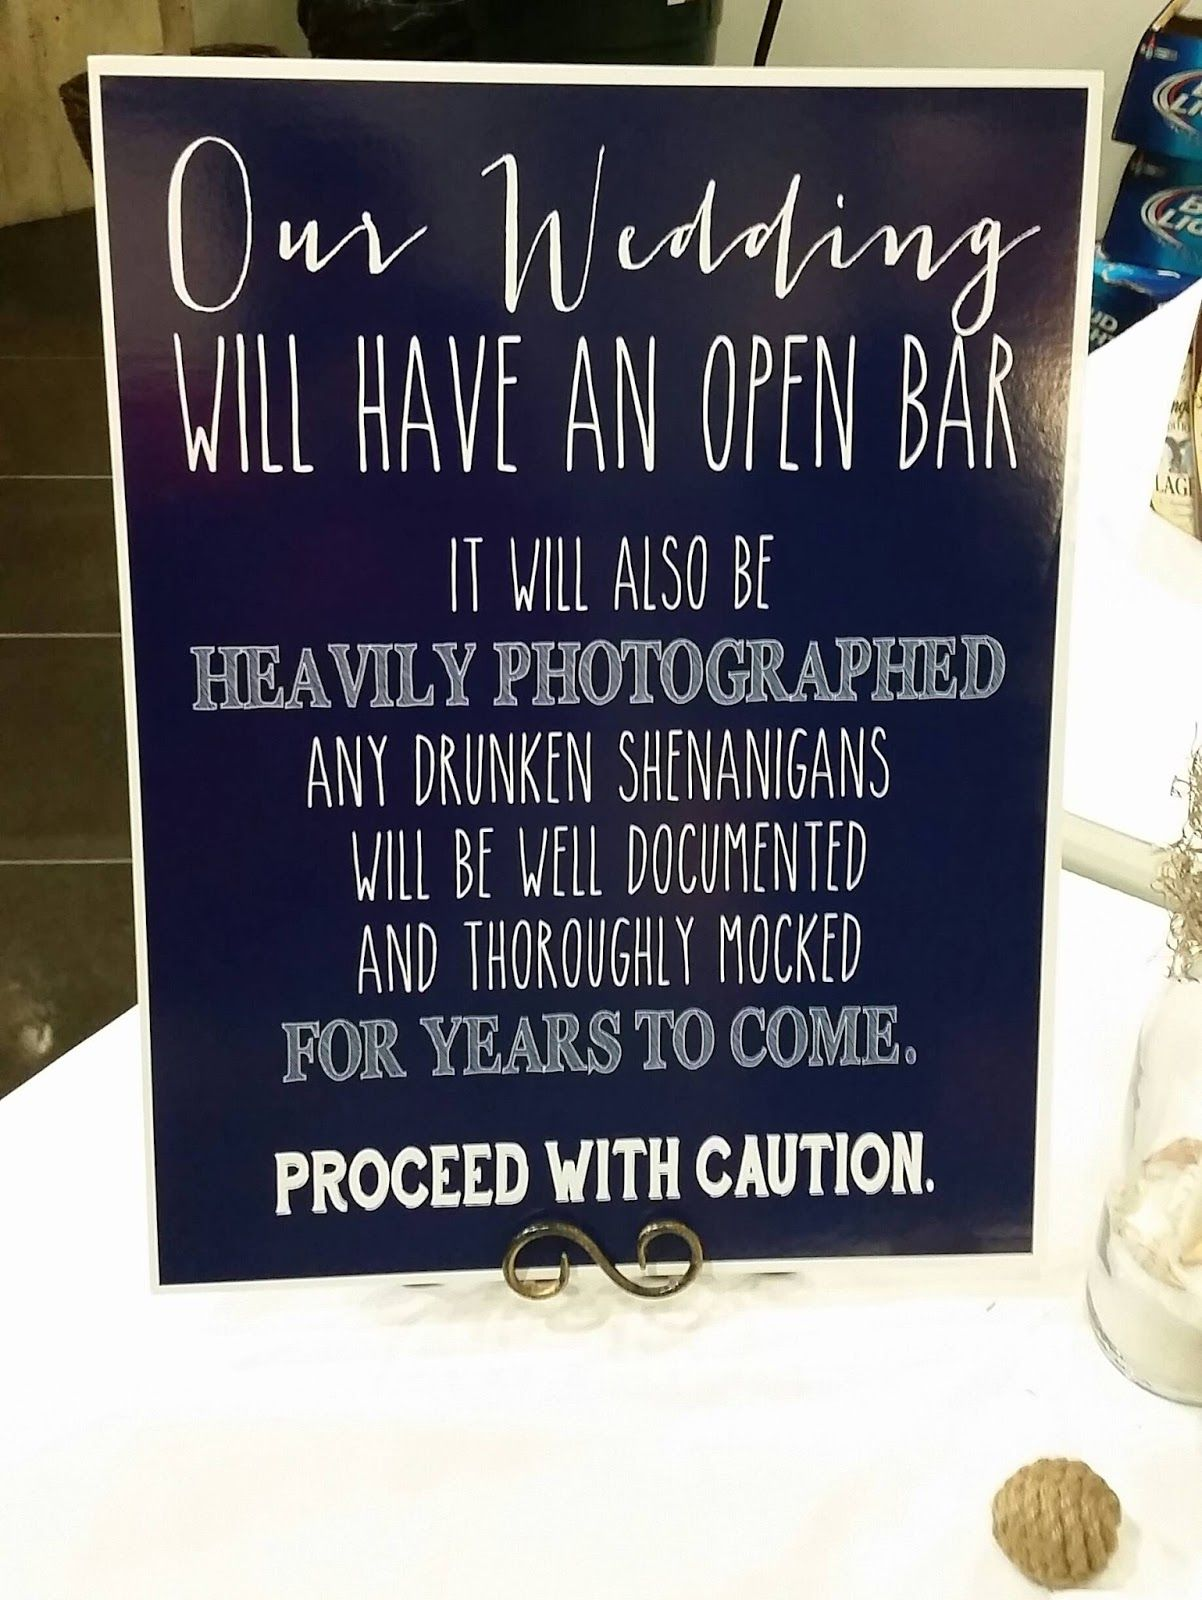 A Good Reminder For The Open Bar